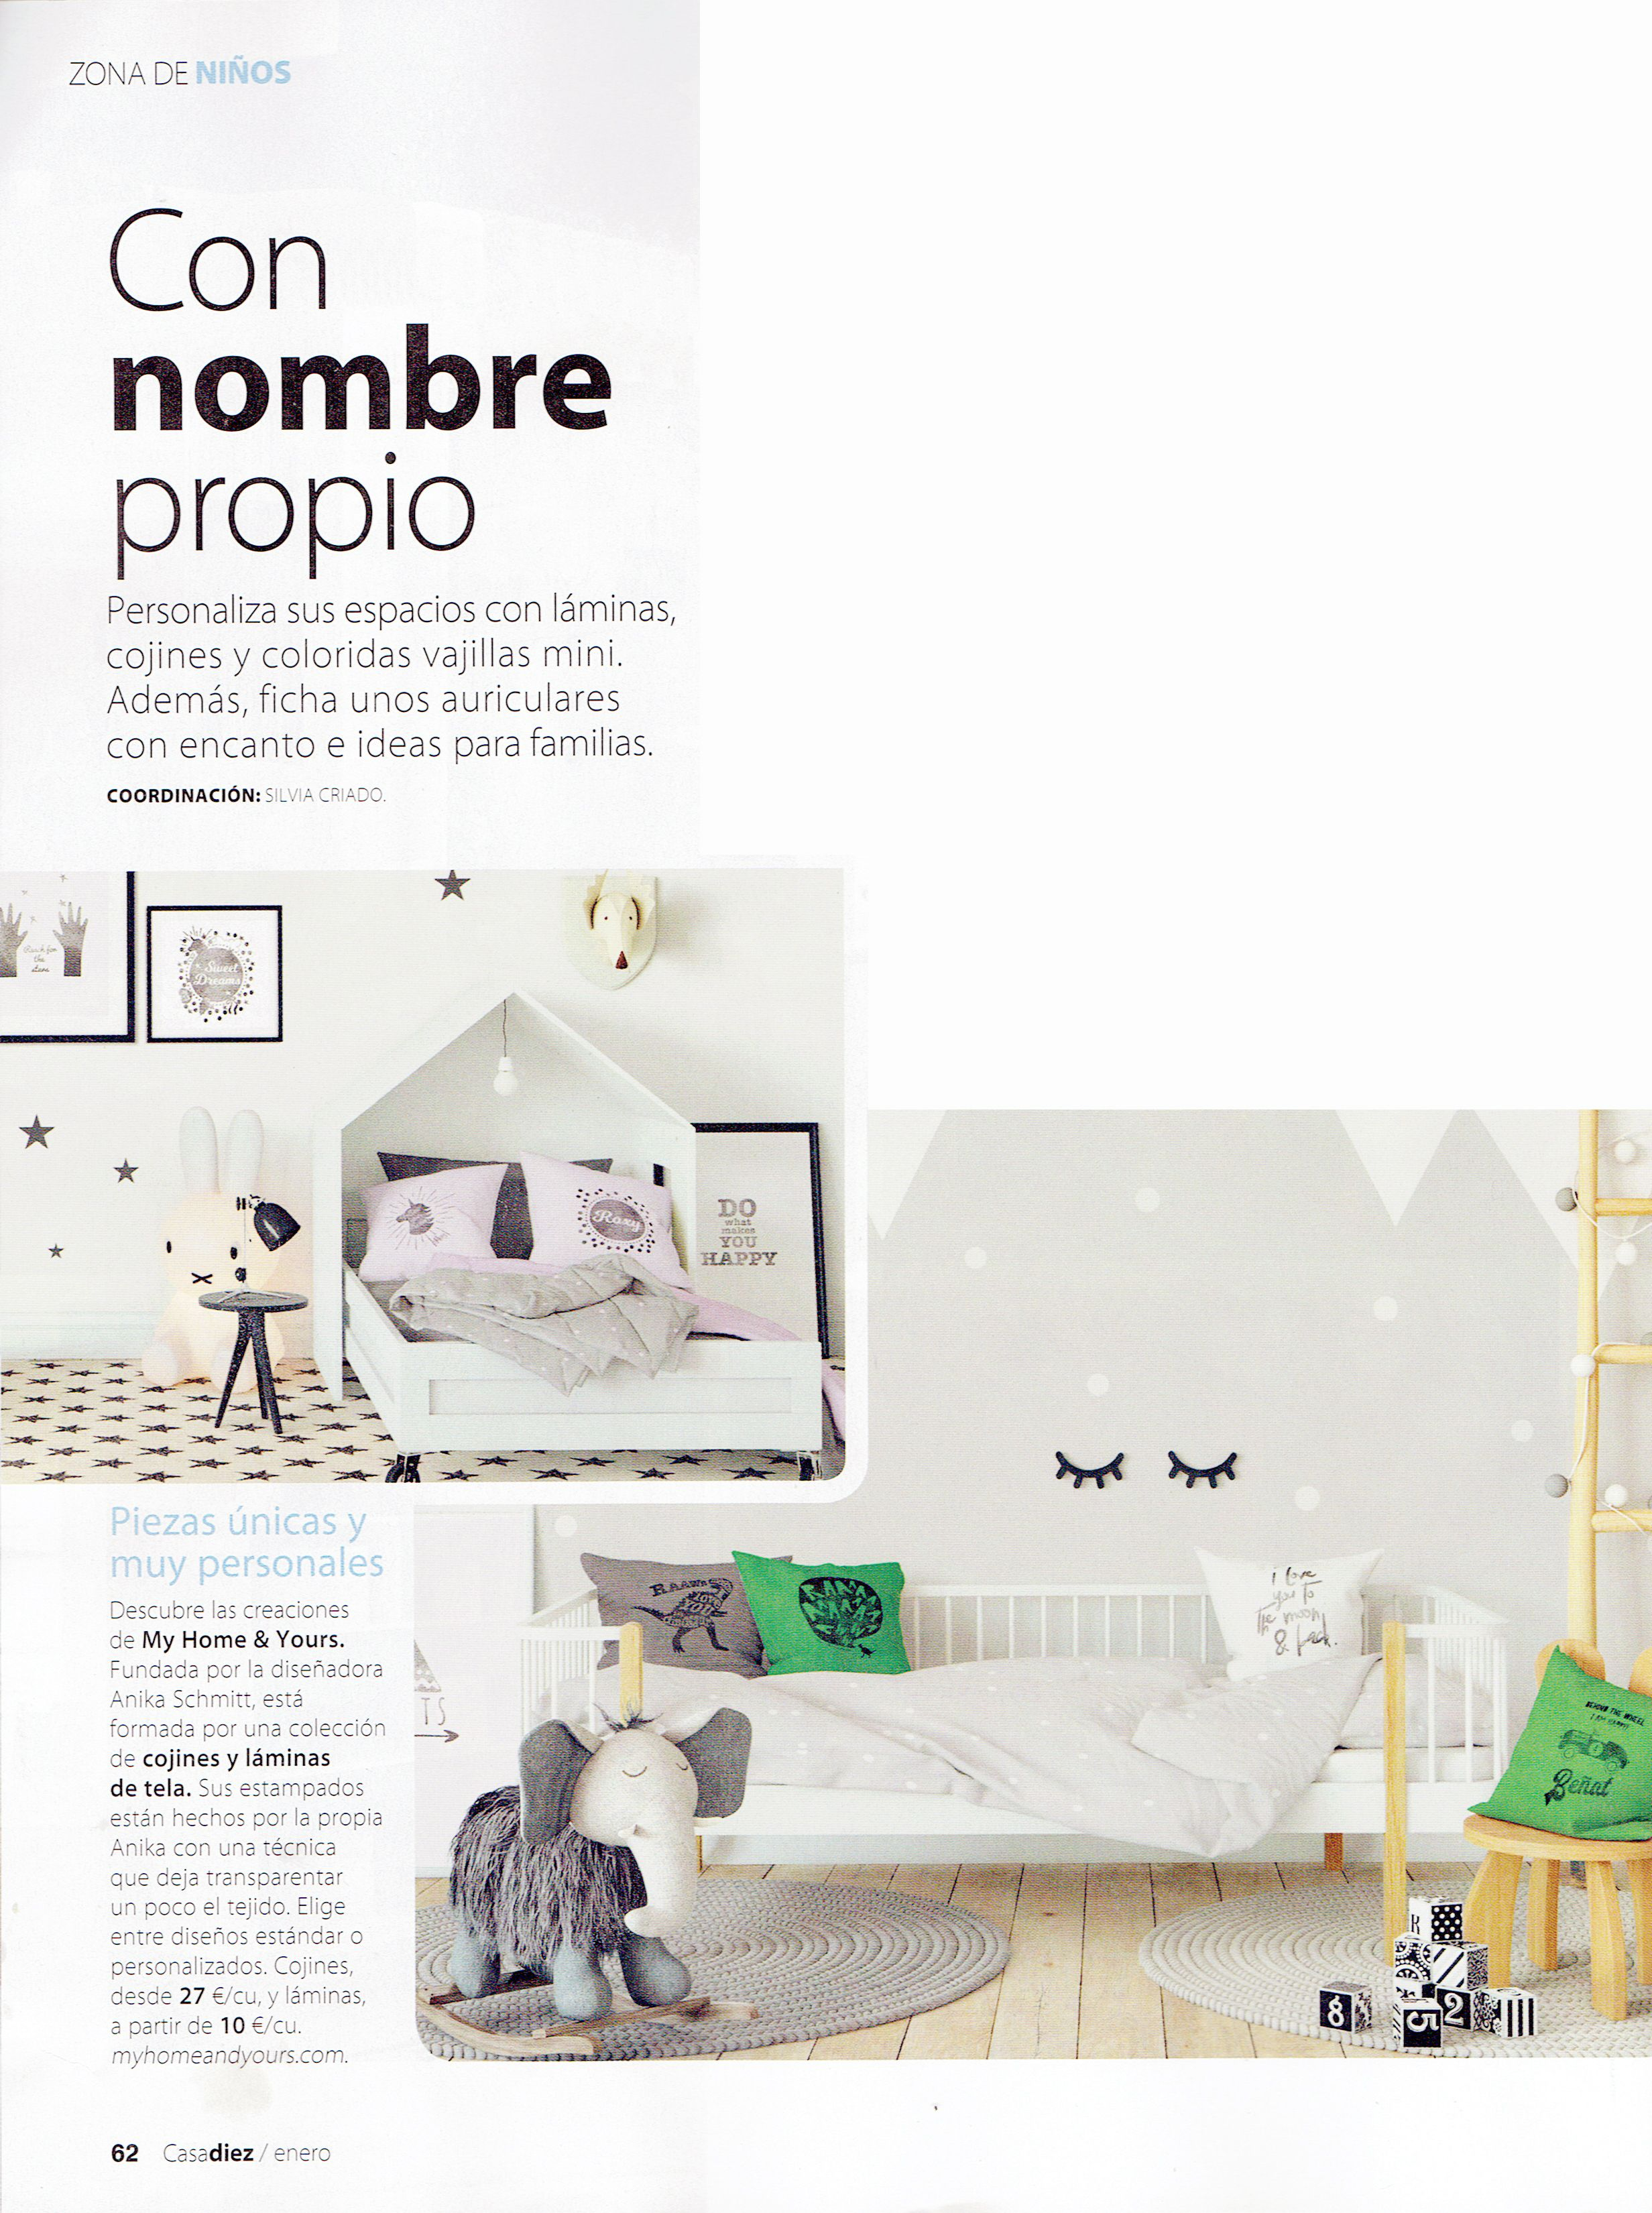 Casa Diez writes about My Home and Yours